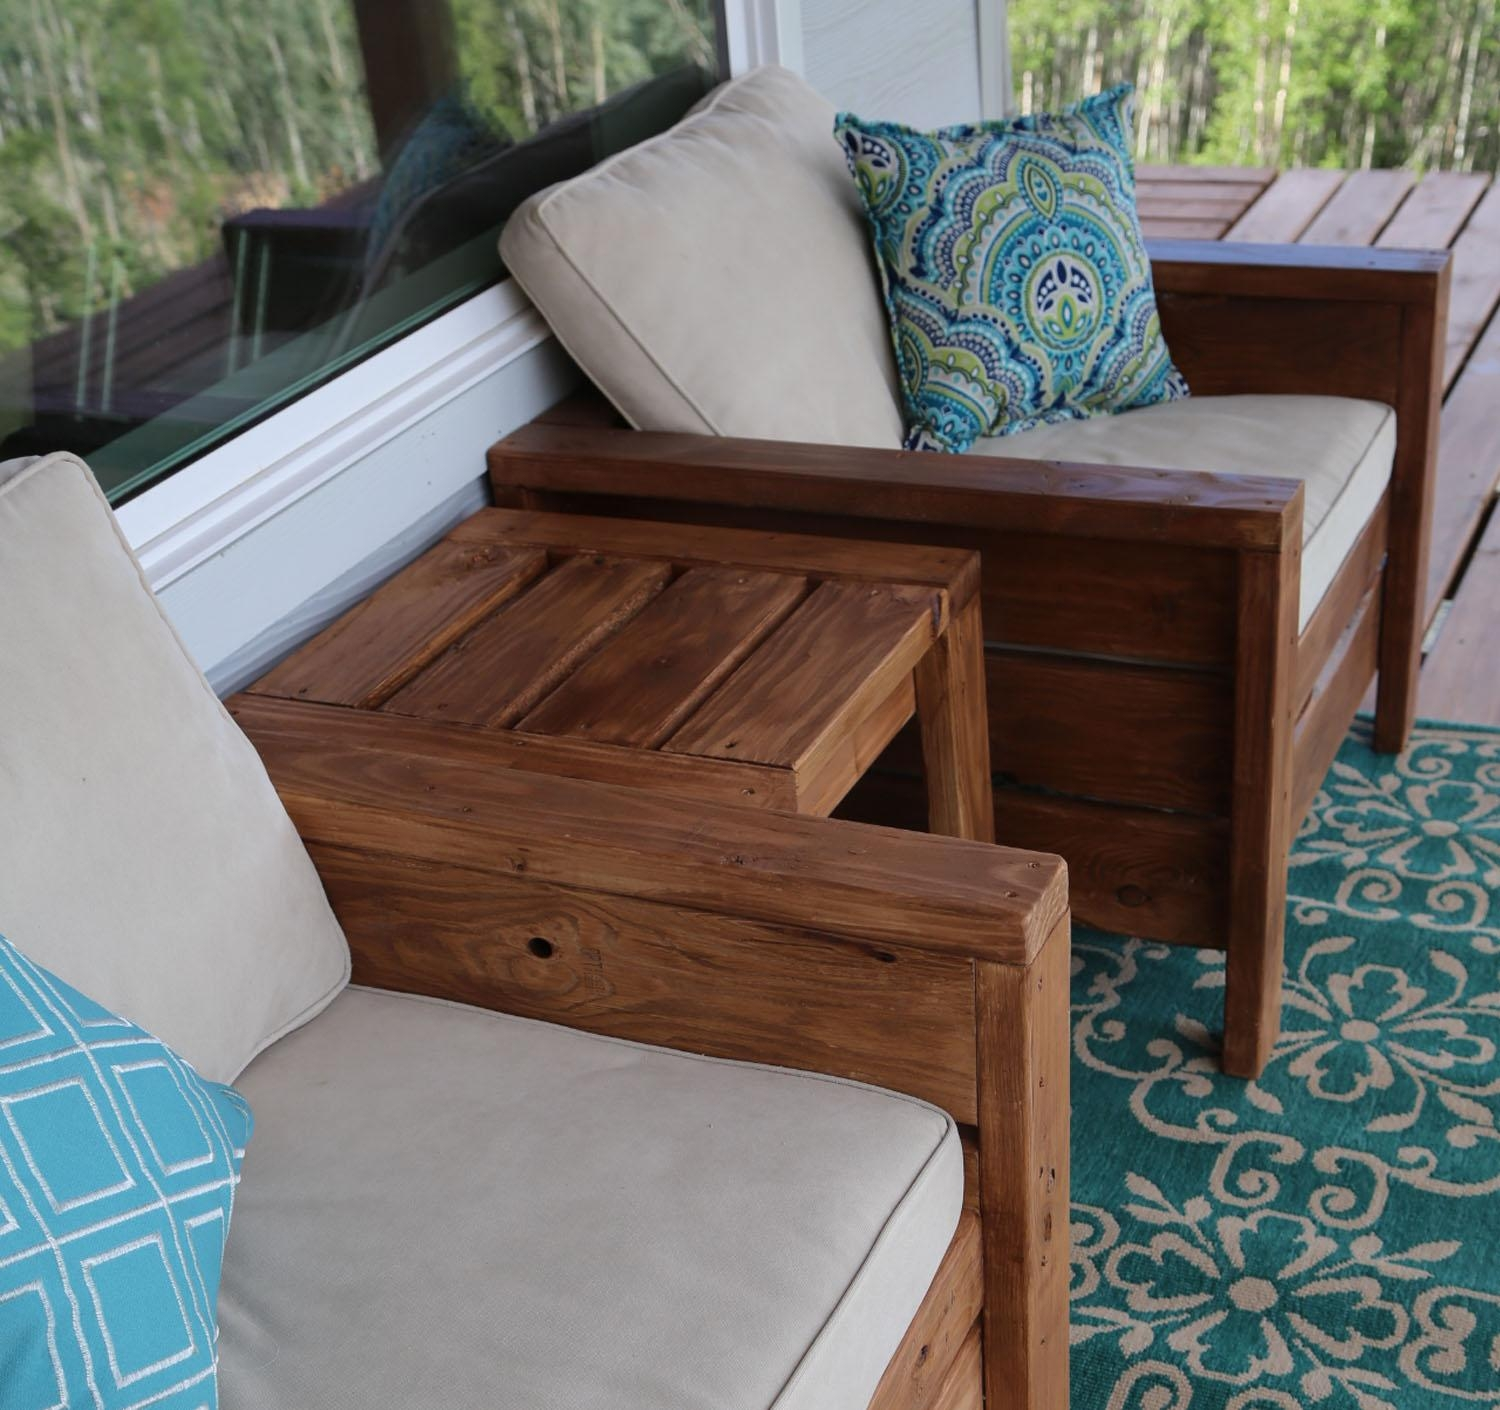 Ana White | Modern Outdoor Chair From 2X4S And 2X6S – Diy Projects Pertaining To Ana White Outdoor Sofas (View 7 of 20)